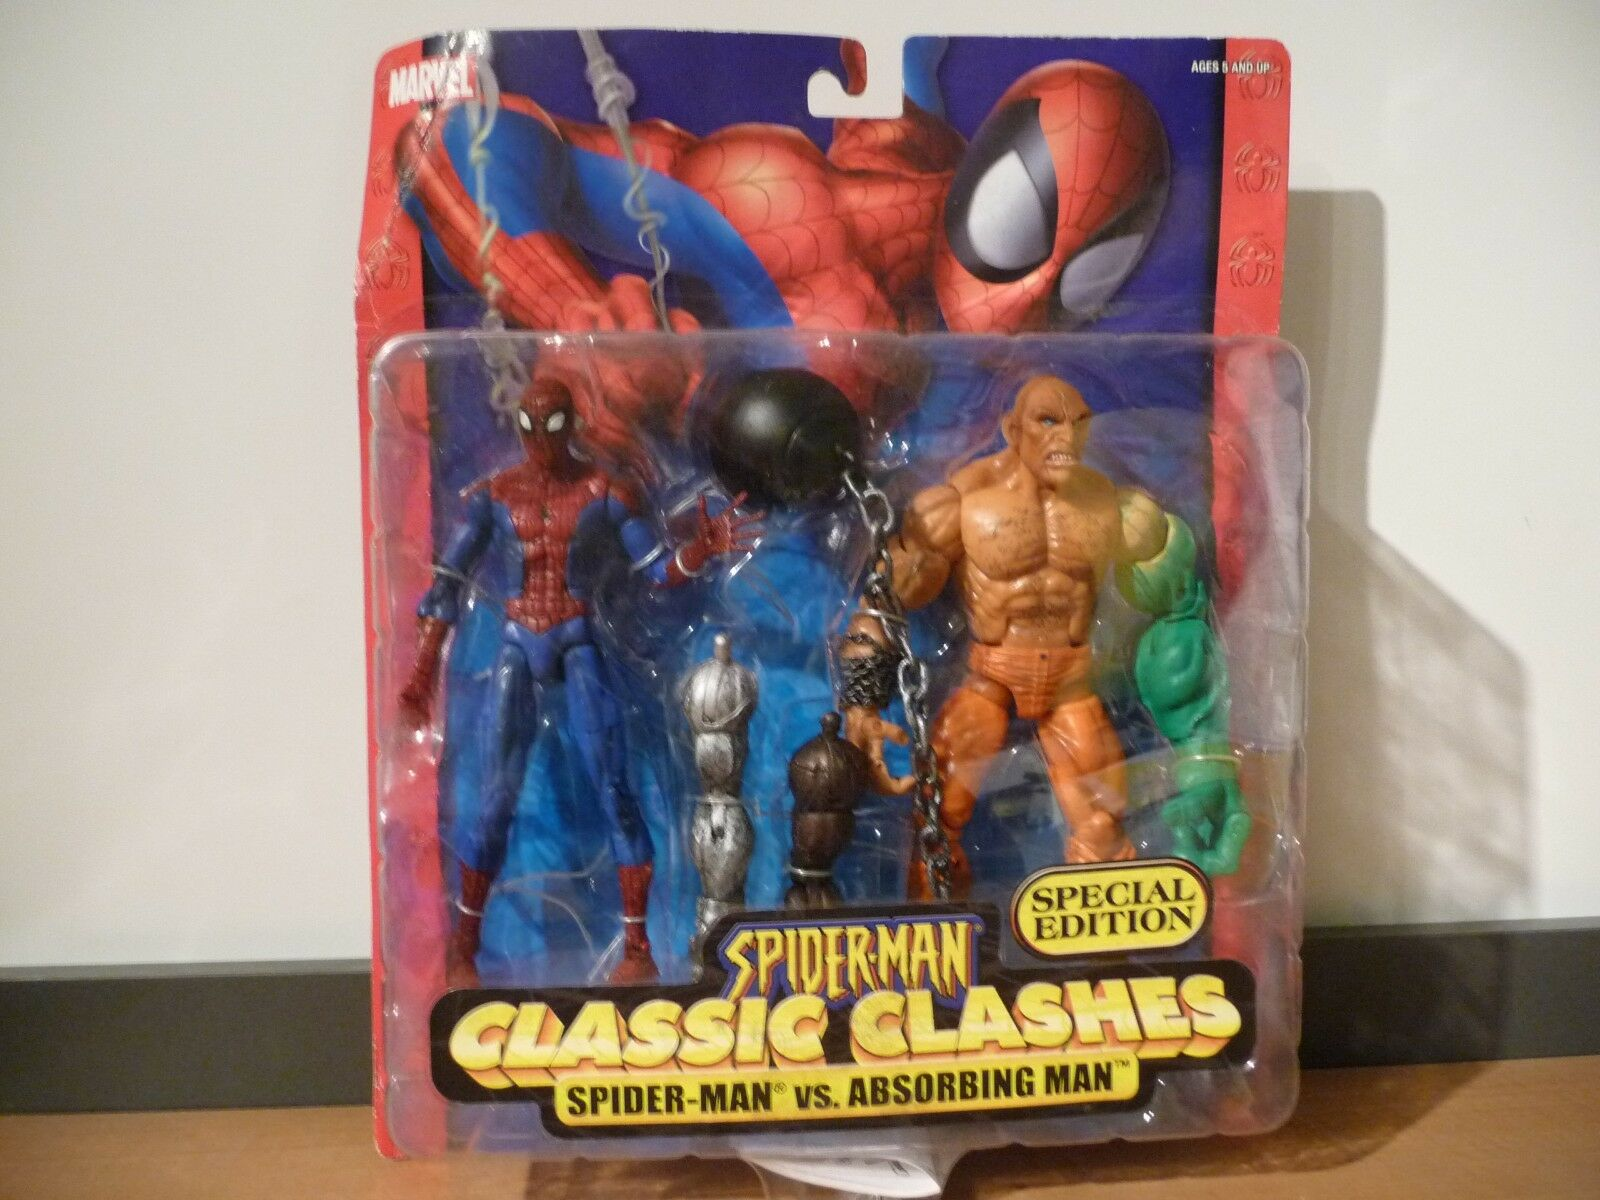 MOC Spider-Man vs Absorbing Man Classic Clashes 2005 Toy Biz Special Edition